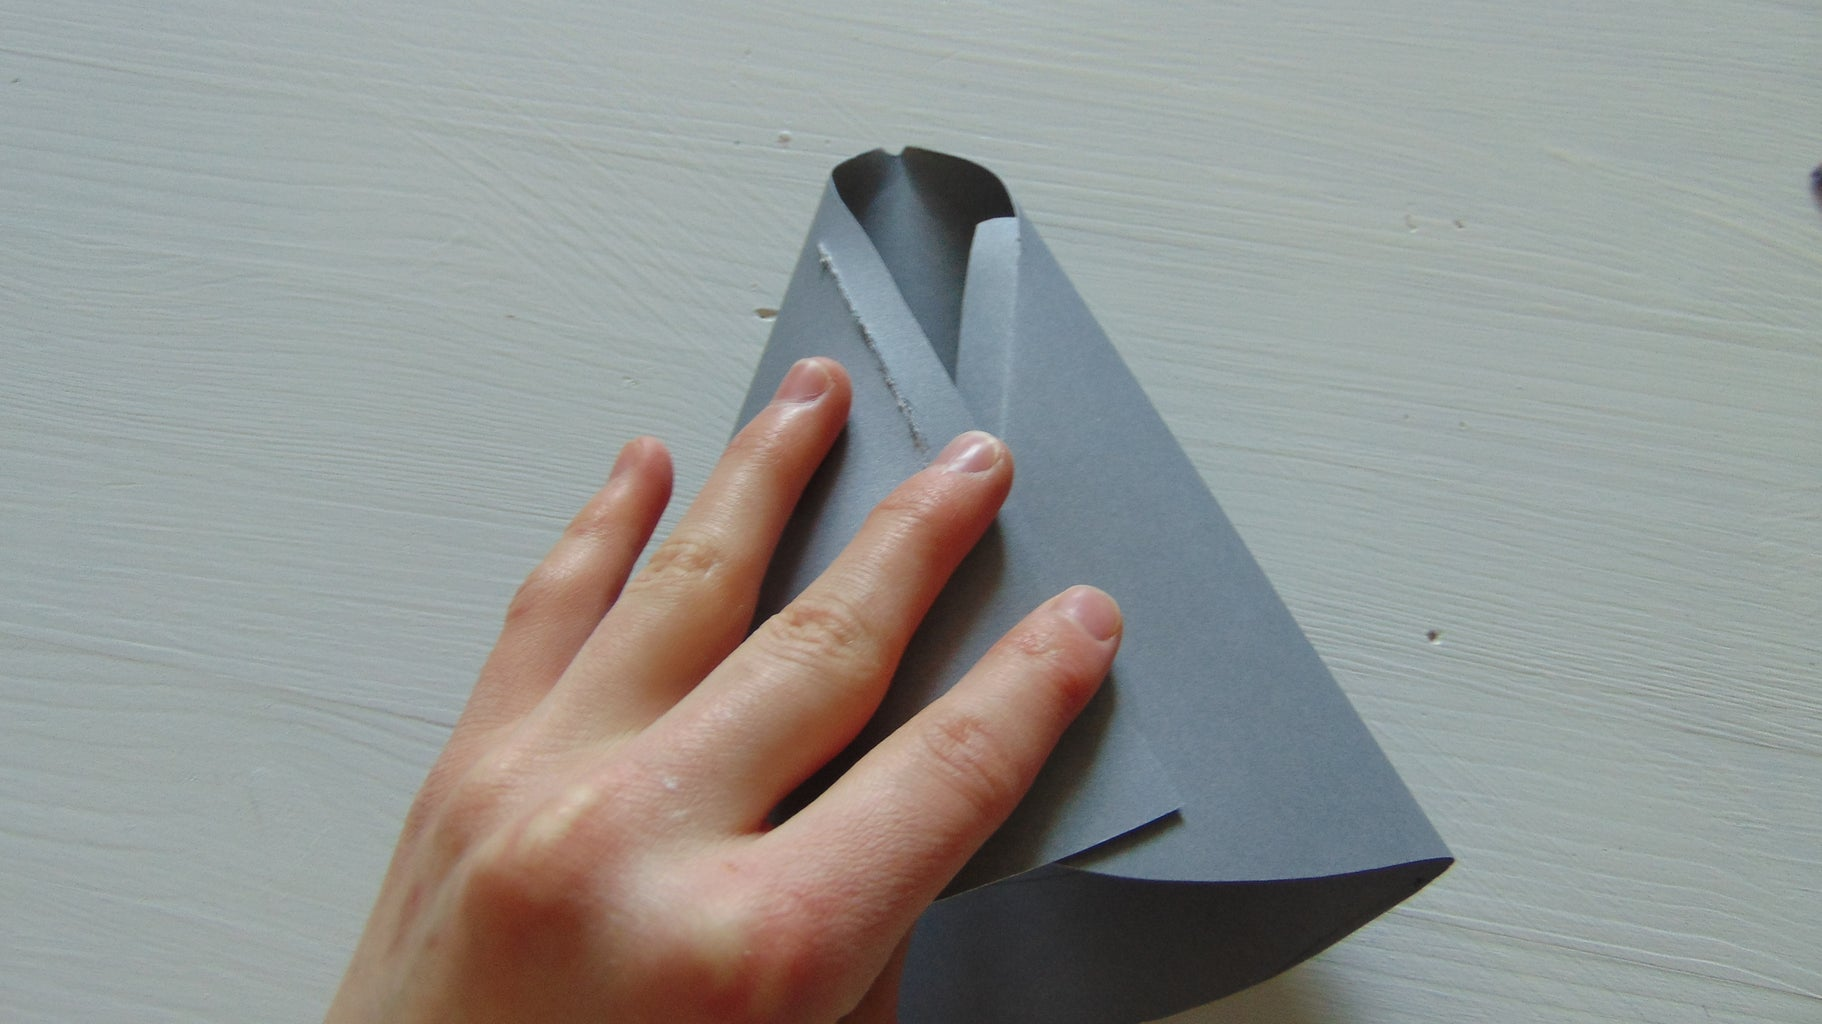 Assembling the Paper Hat